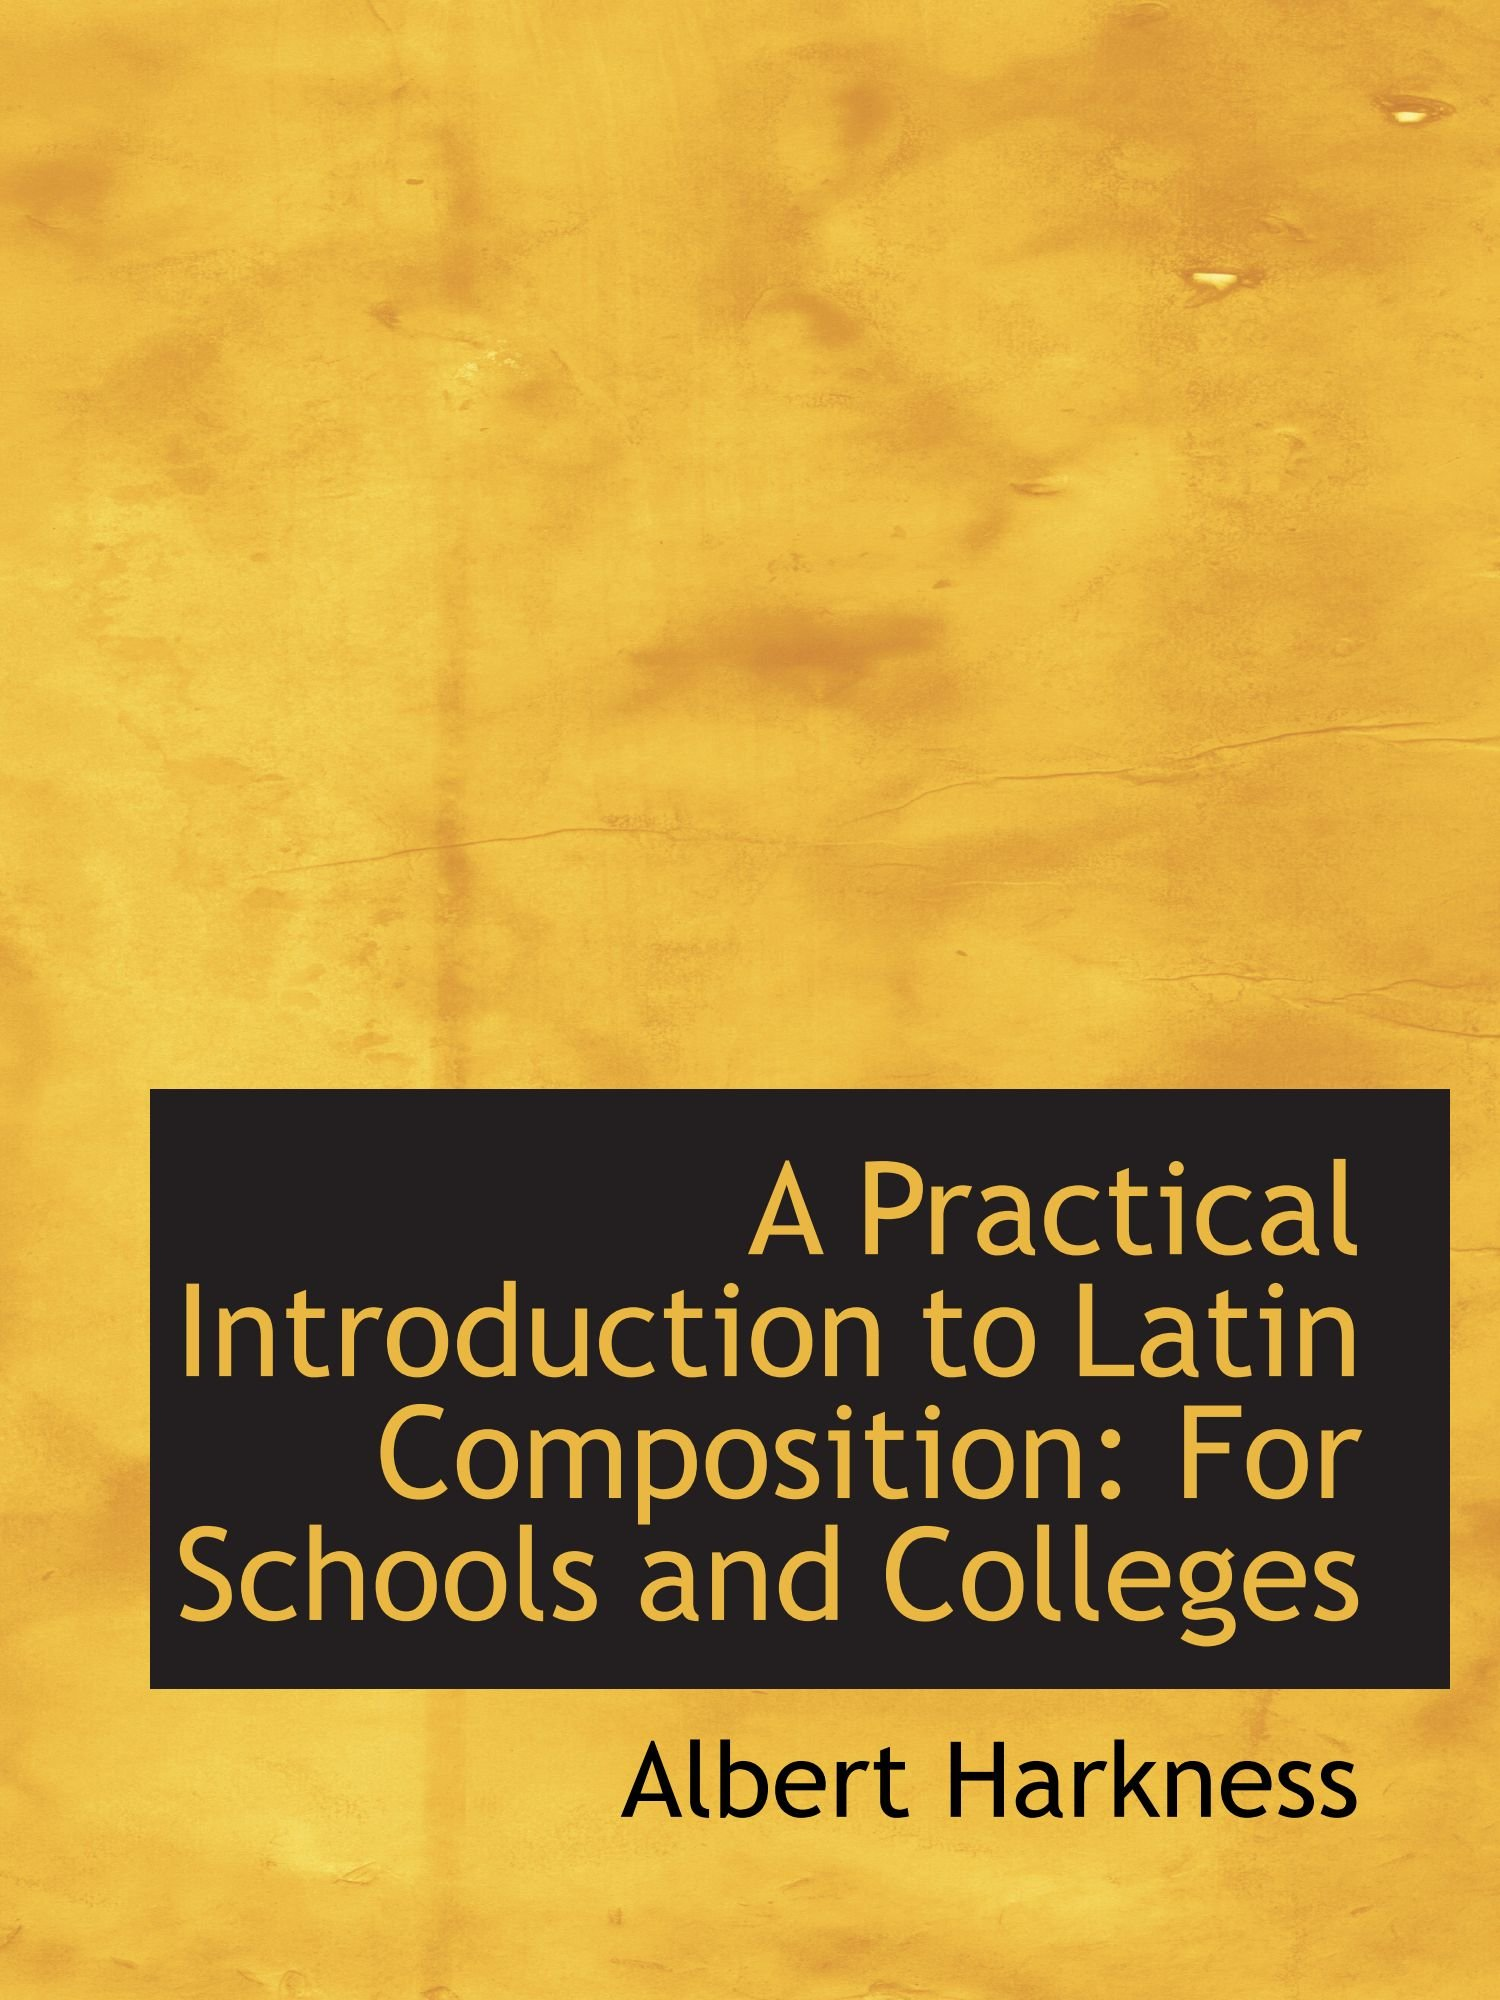 Download A Practical Introduction to Latin Composition: For Schools and Colleges PDF